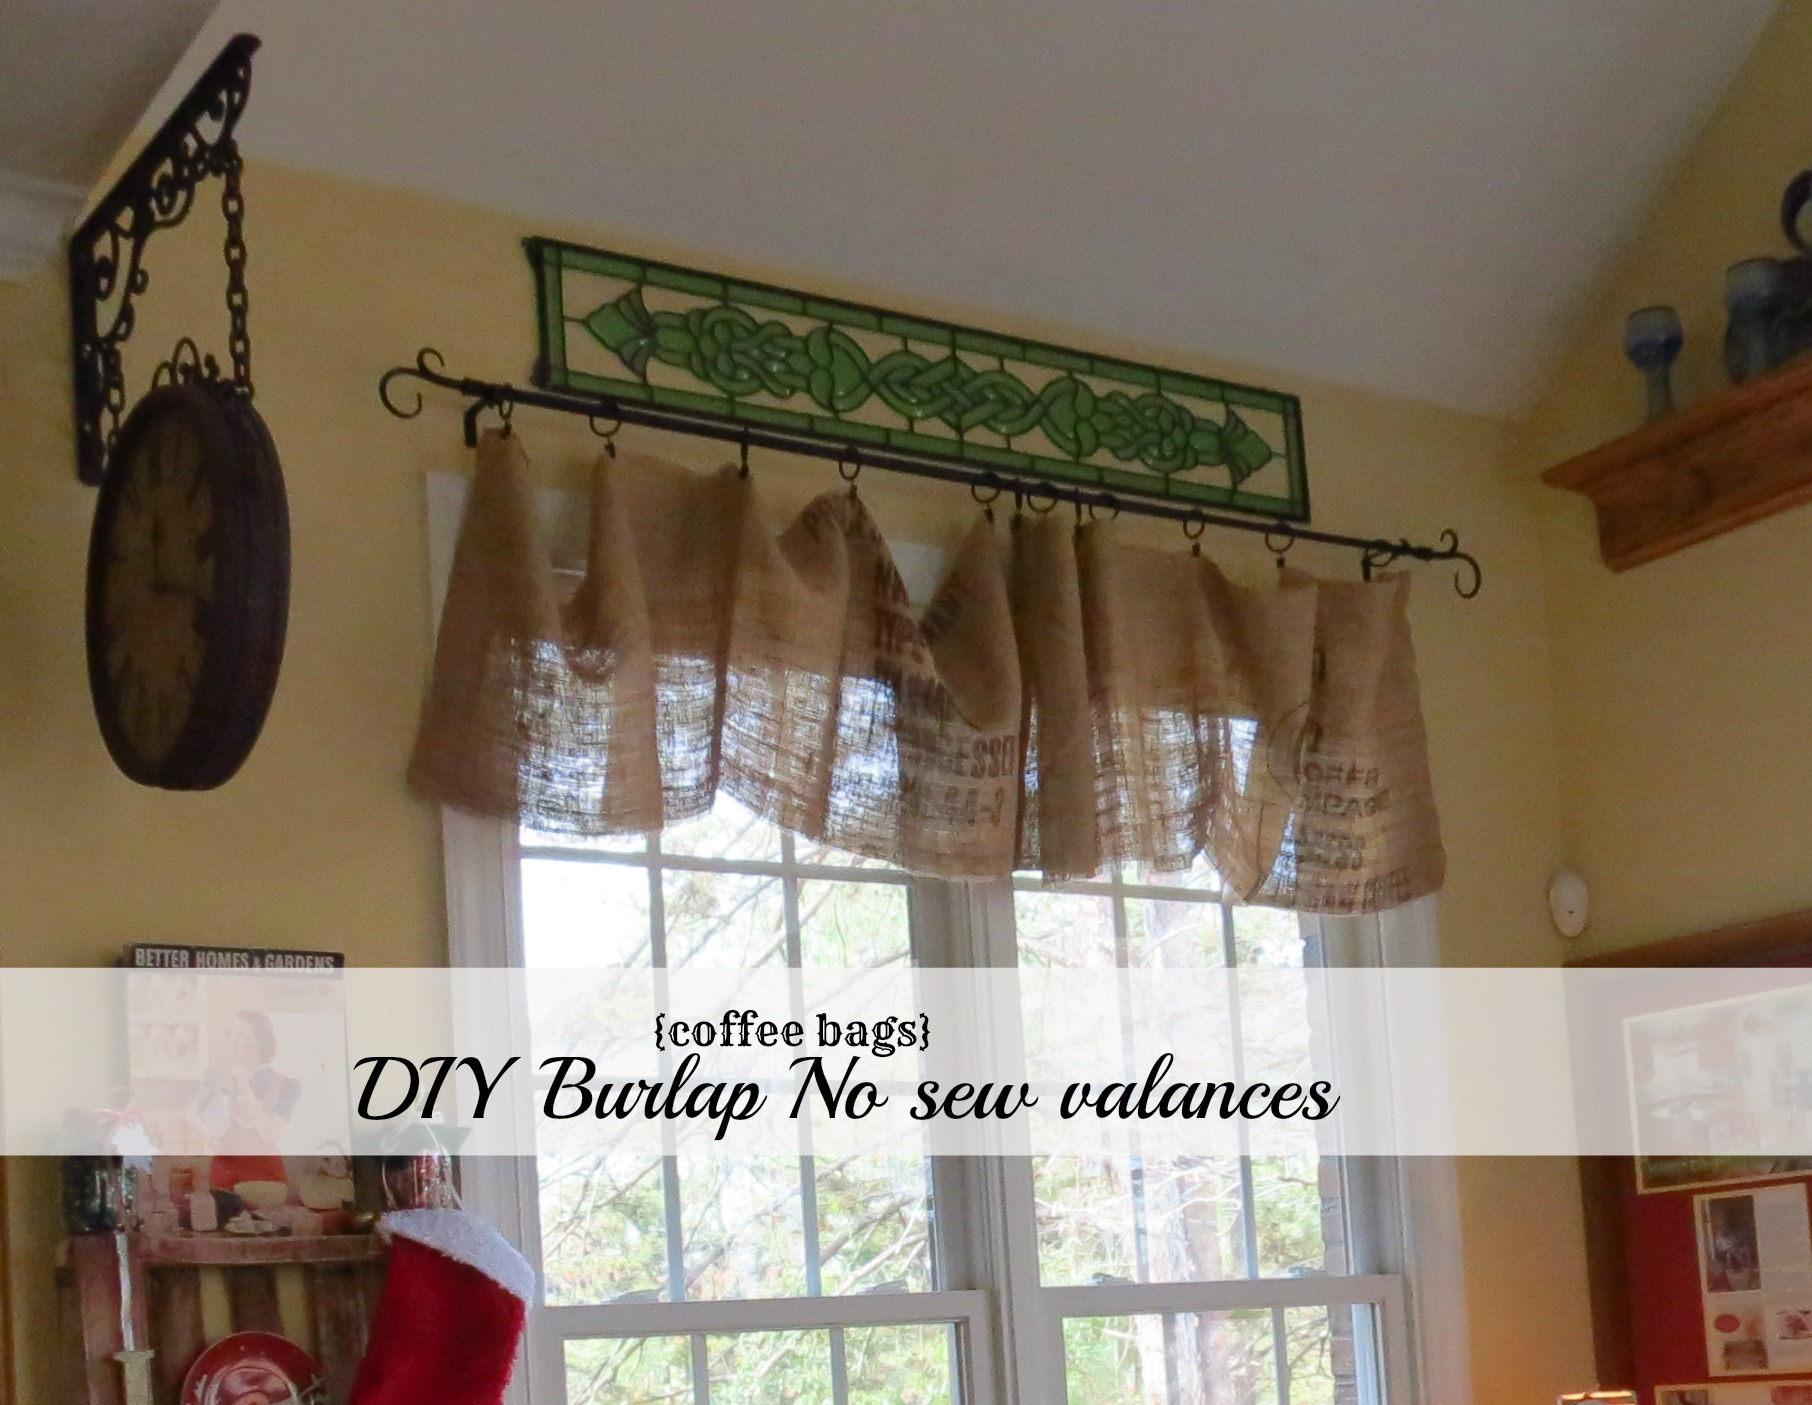 However, I Did Have These Valances On Our Windows For At Least 3 Years. Our  Kitchen Is Forever Evolving And I Will Leave You With The Most Recent  Changes At ...